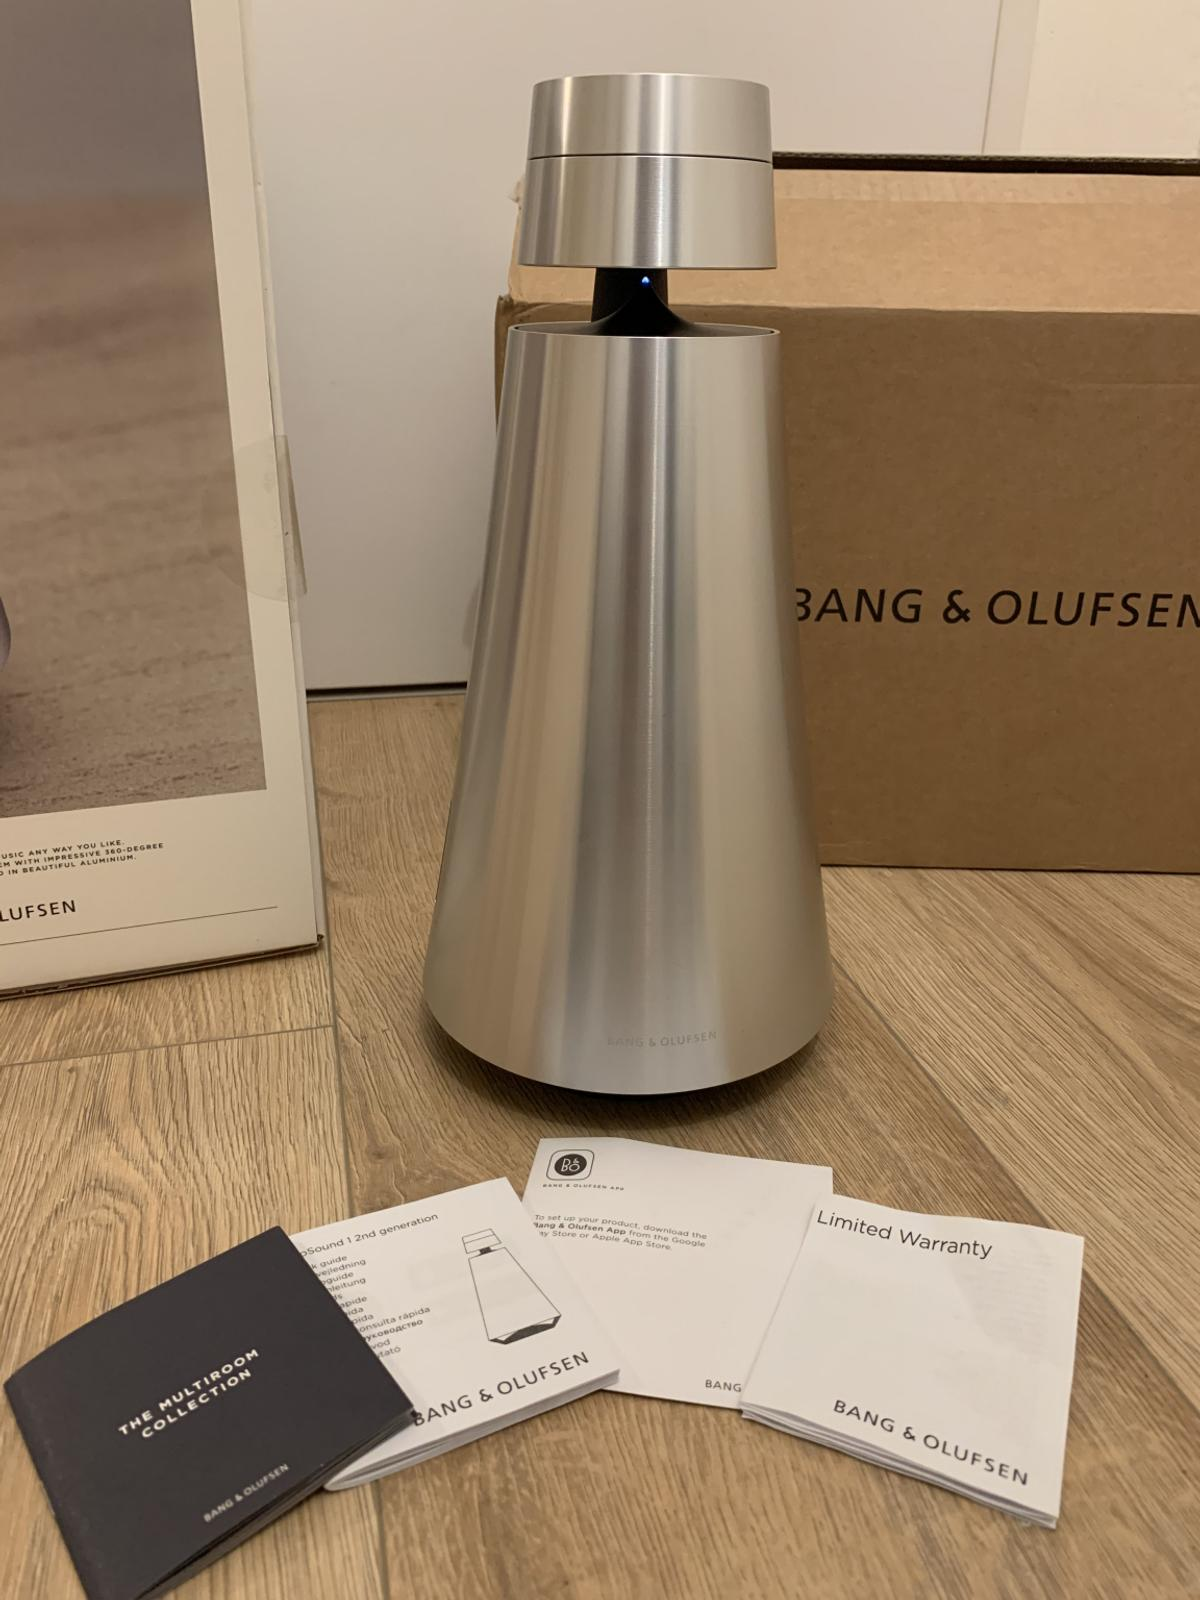 • Bang & Olufsen BeoSound 1 Wireless Speaker • Condition 10/10, used only 2 weeks (christmas gift) • With box, papers, garranty, and main cable • Shipping from France